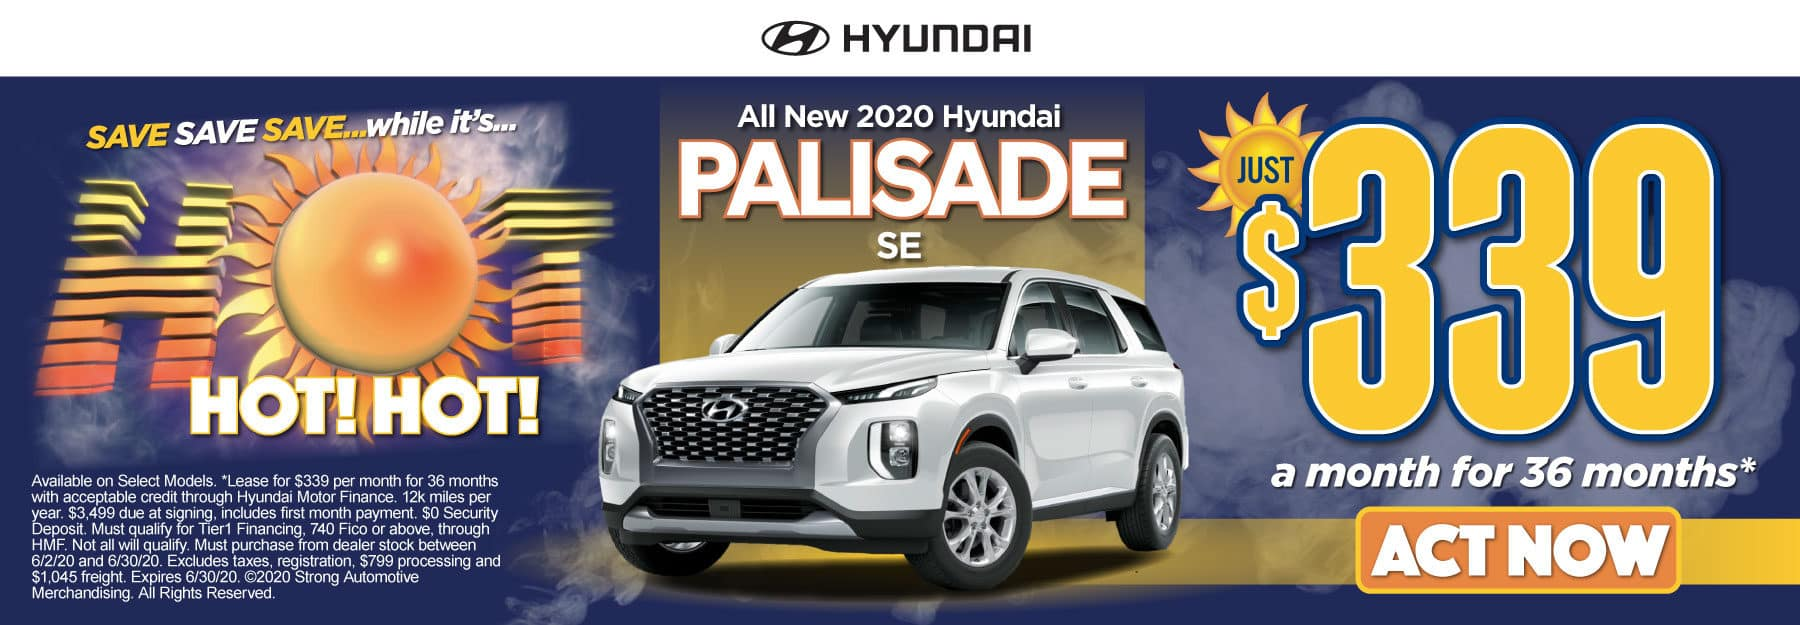 All New 2020 Hyundai Palisade - Just $339 a month for 36 months - Click to View Inventory